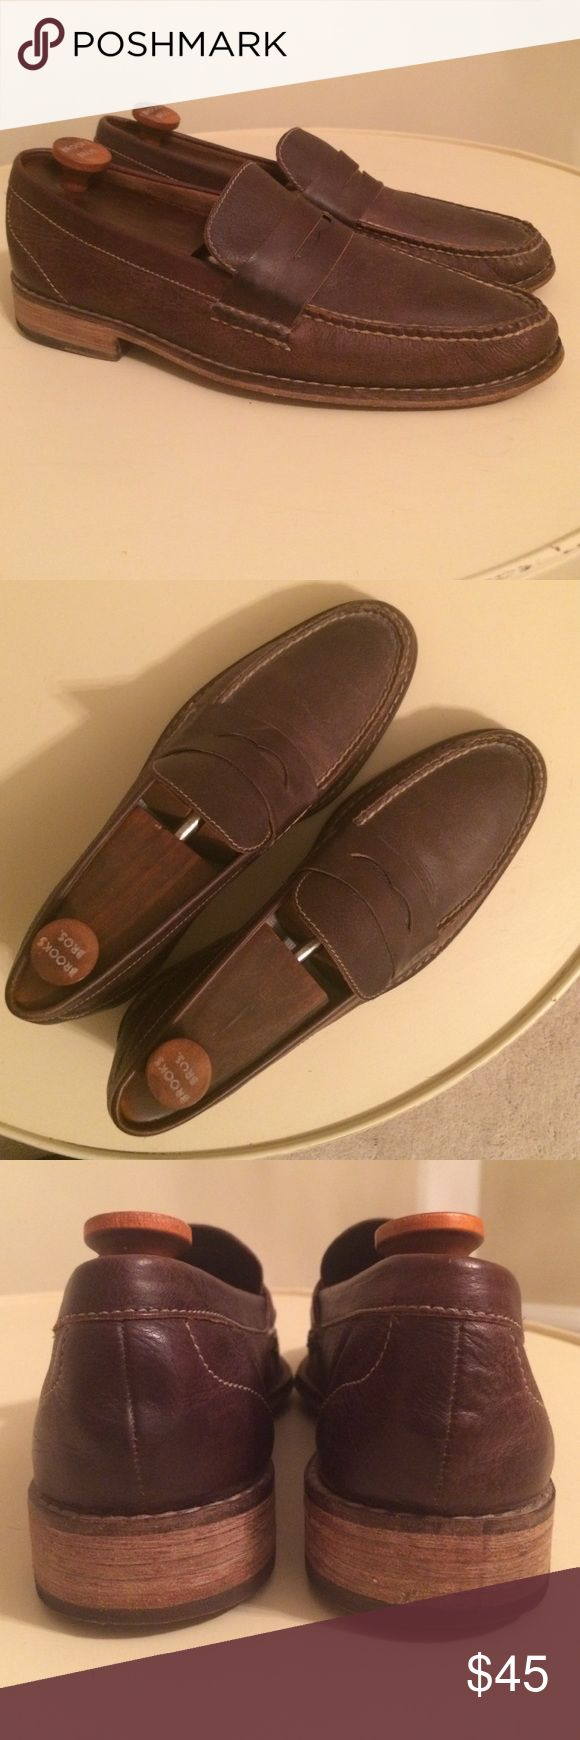 Cole Haan brown leather loafers. Size 10m Nike air Good condition.  Inserts included (shoe trees not included) Cole Haan Shoes Loafers & Slip-Ons